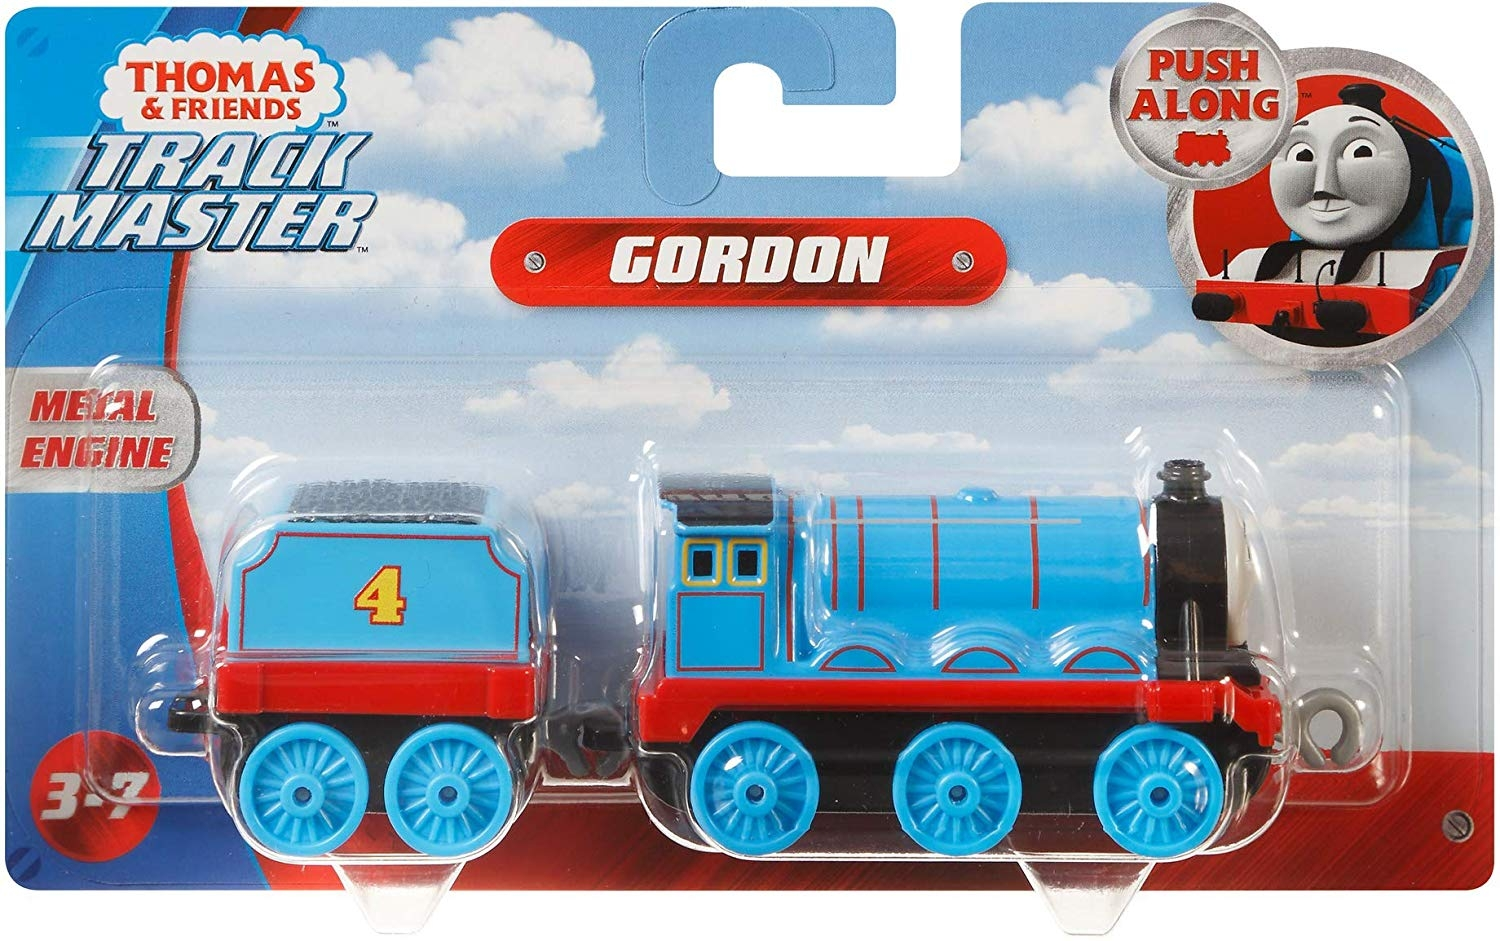 Thomas And Friends Track Master Push Along Gordon Die-cast Metal Engine